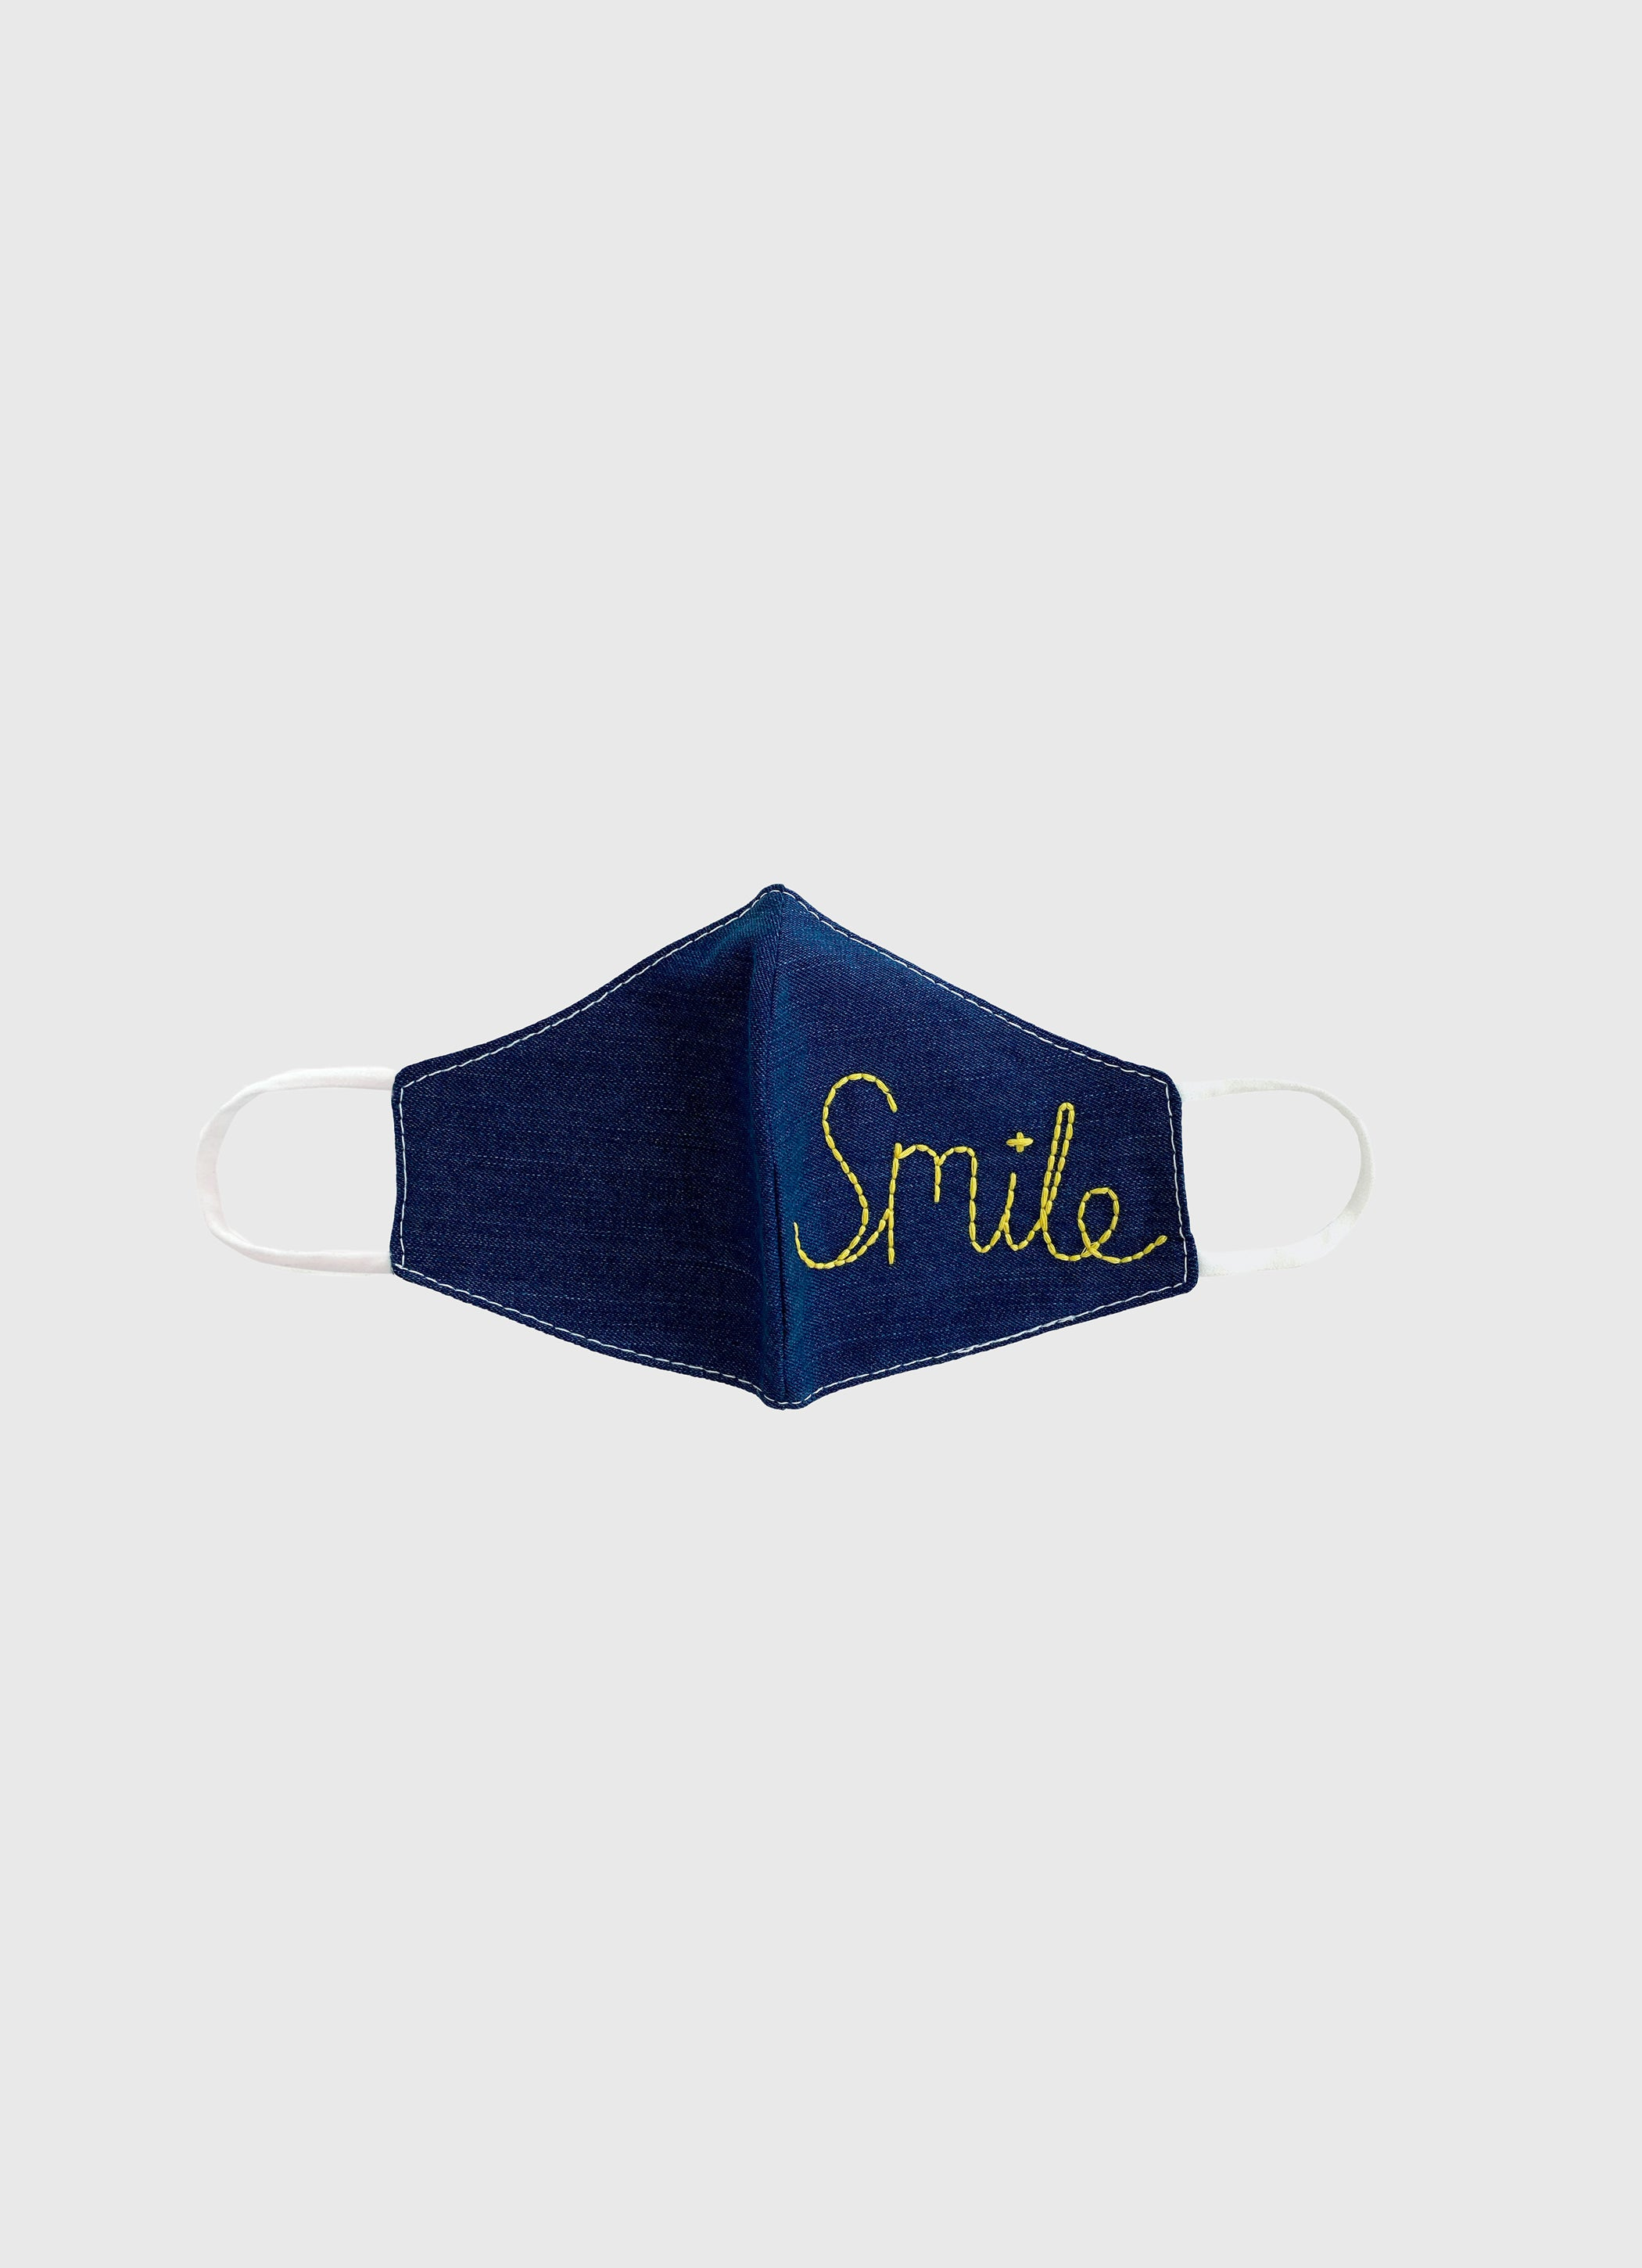 Embroidered Mask- Smile